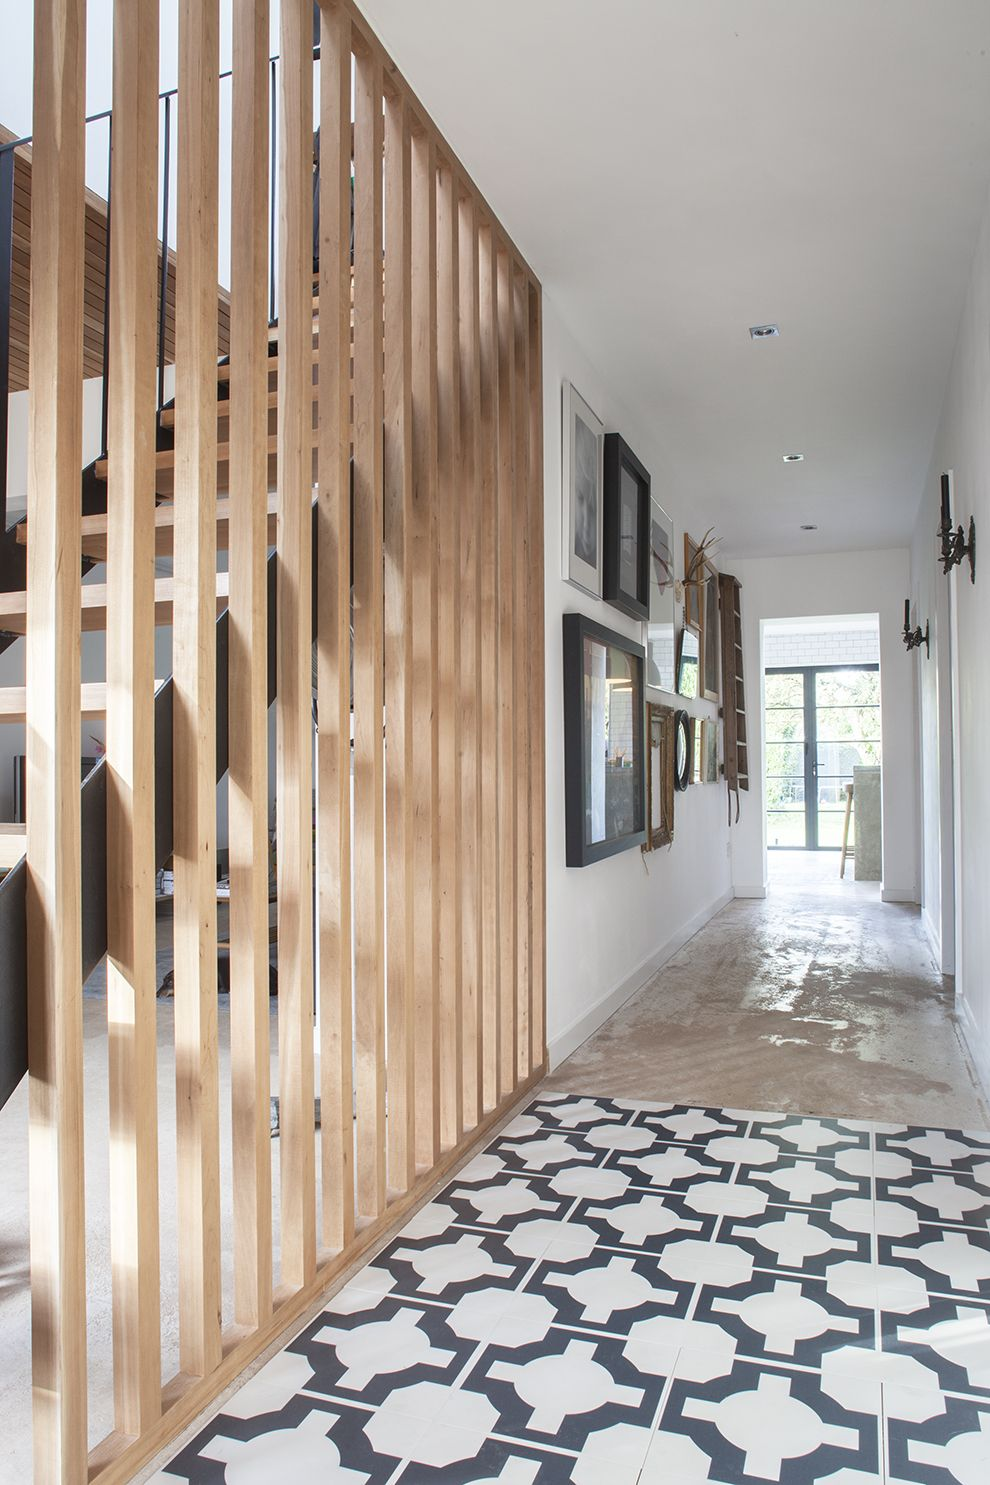 Exceptional Stairs And Tiled Floor   A One Bed 1930u0027s Bungalow Renovation To A Modern  Family Three